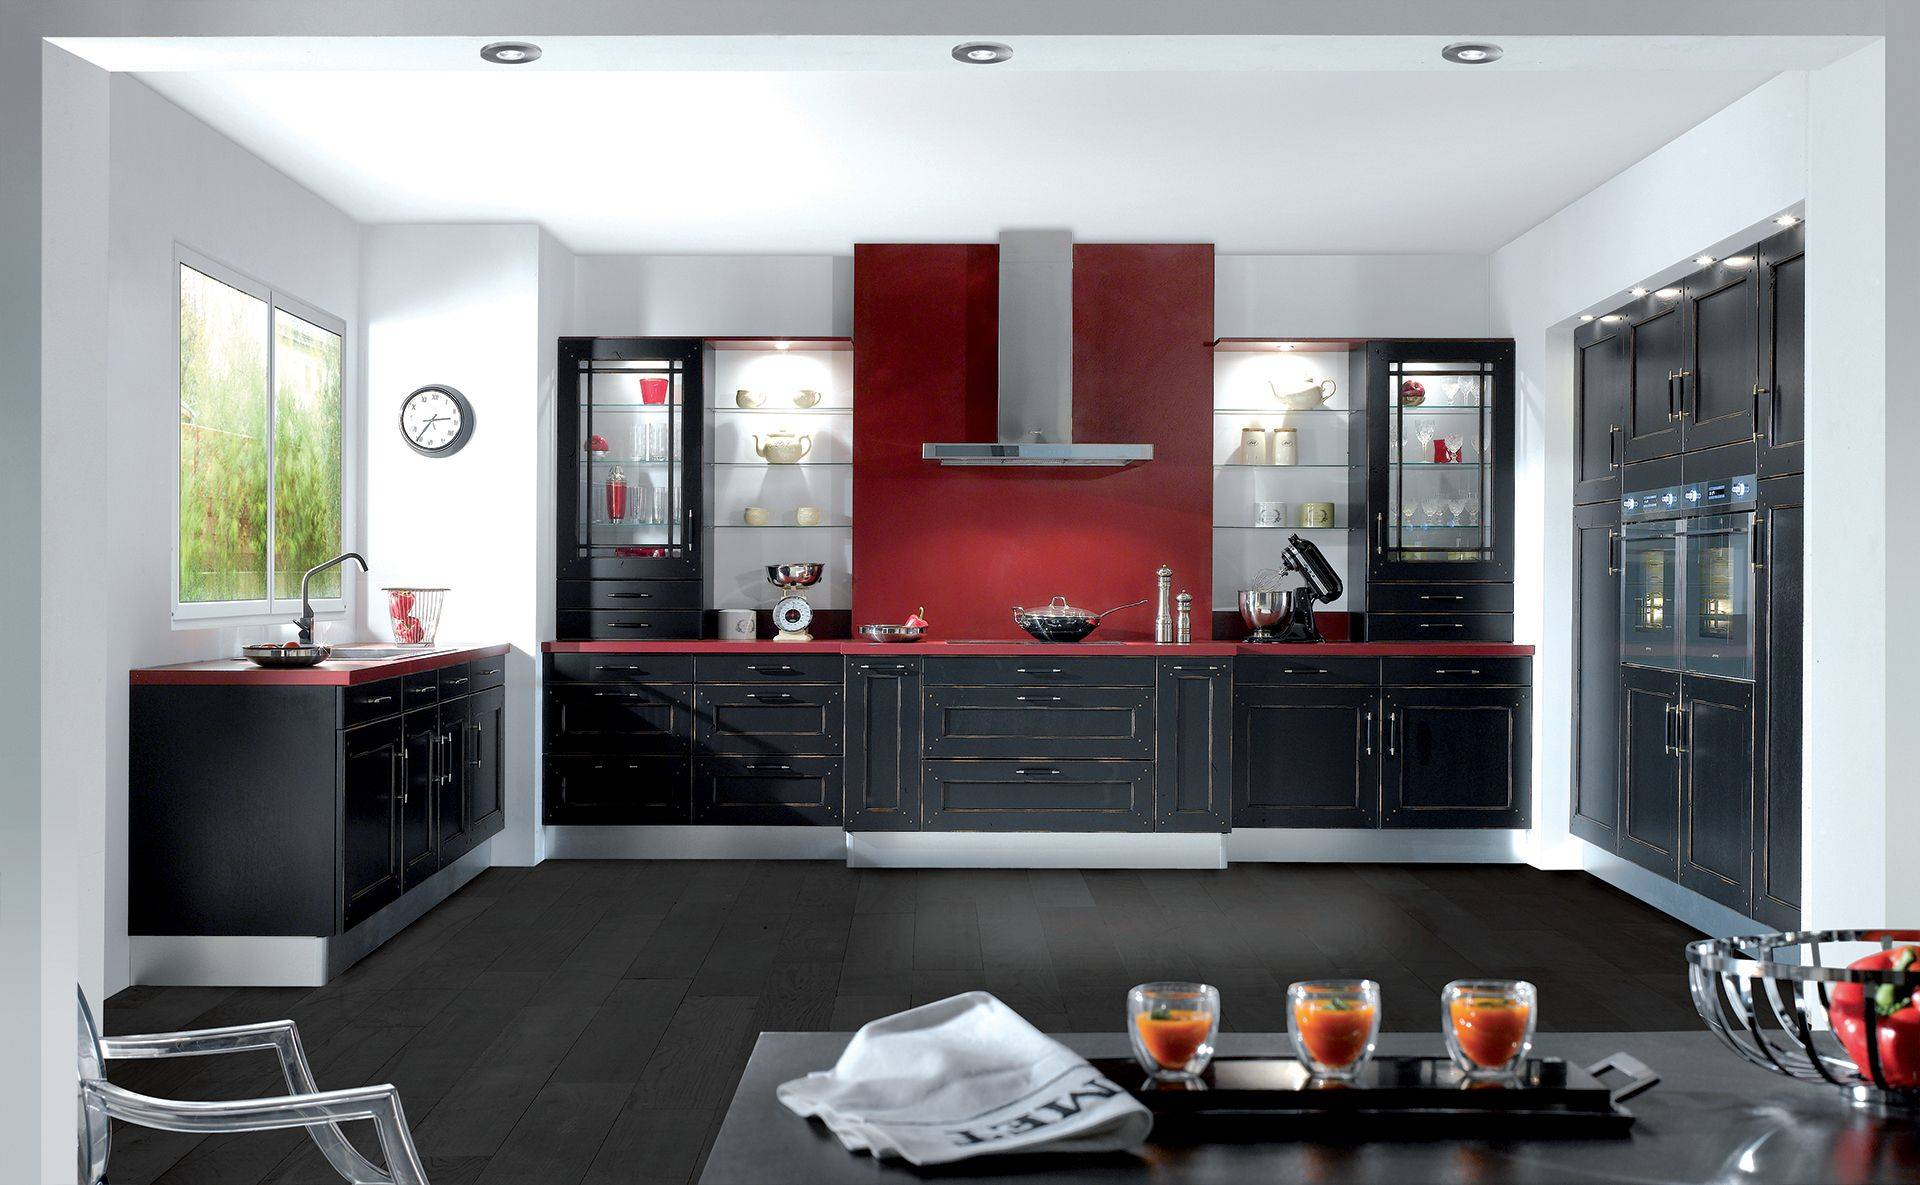 cuisine monast re quip e fonctionnelle et design par cuisines teisseire. Black Bedroom Furniture Sets. Home Design Ideas